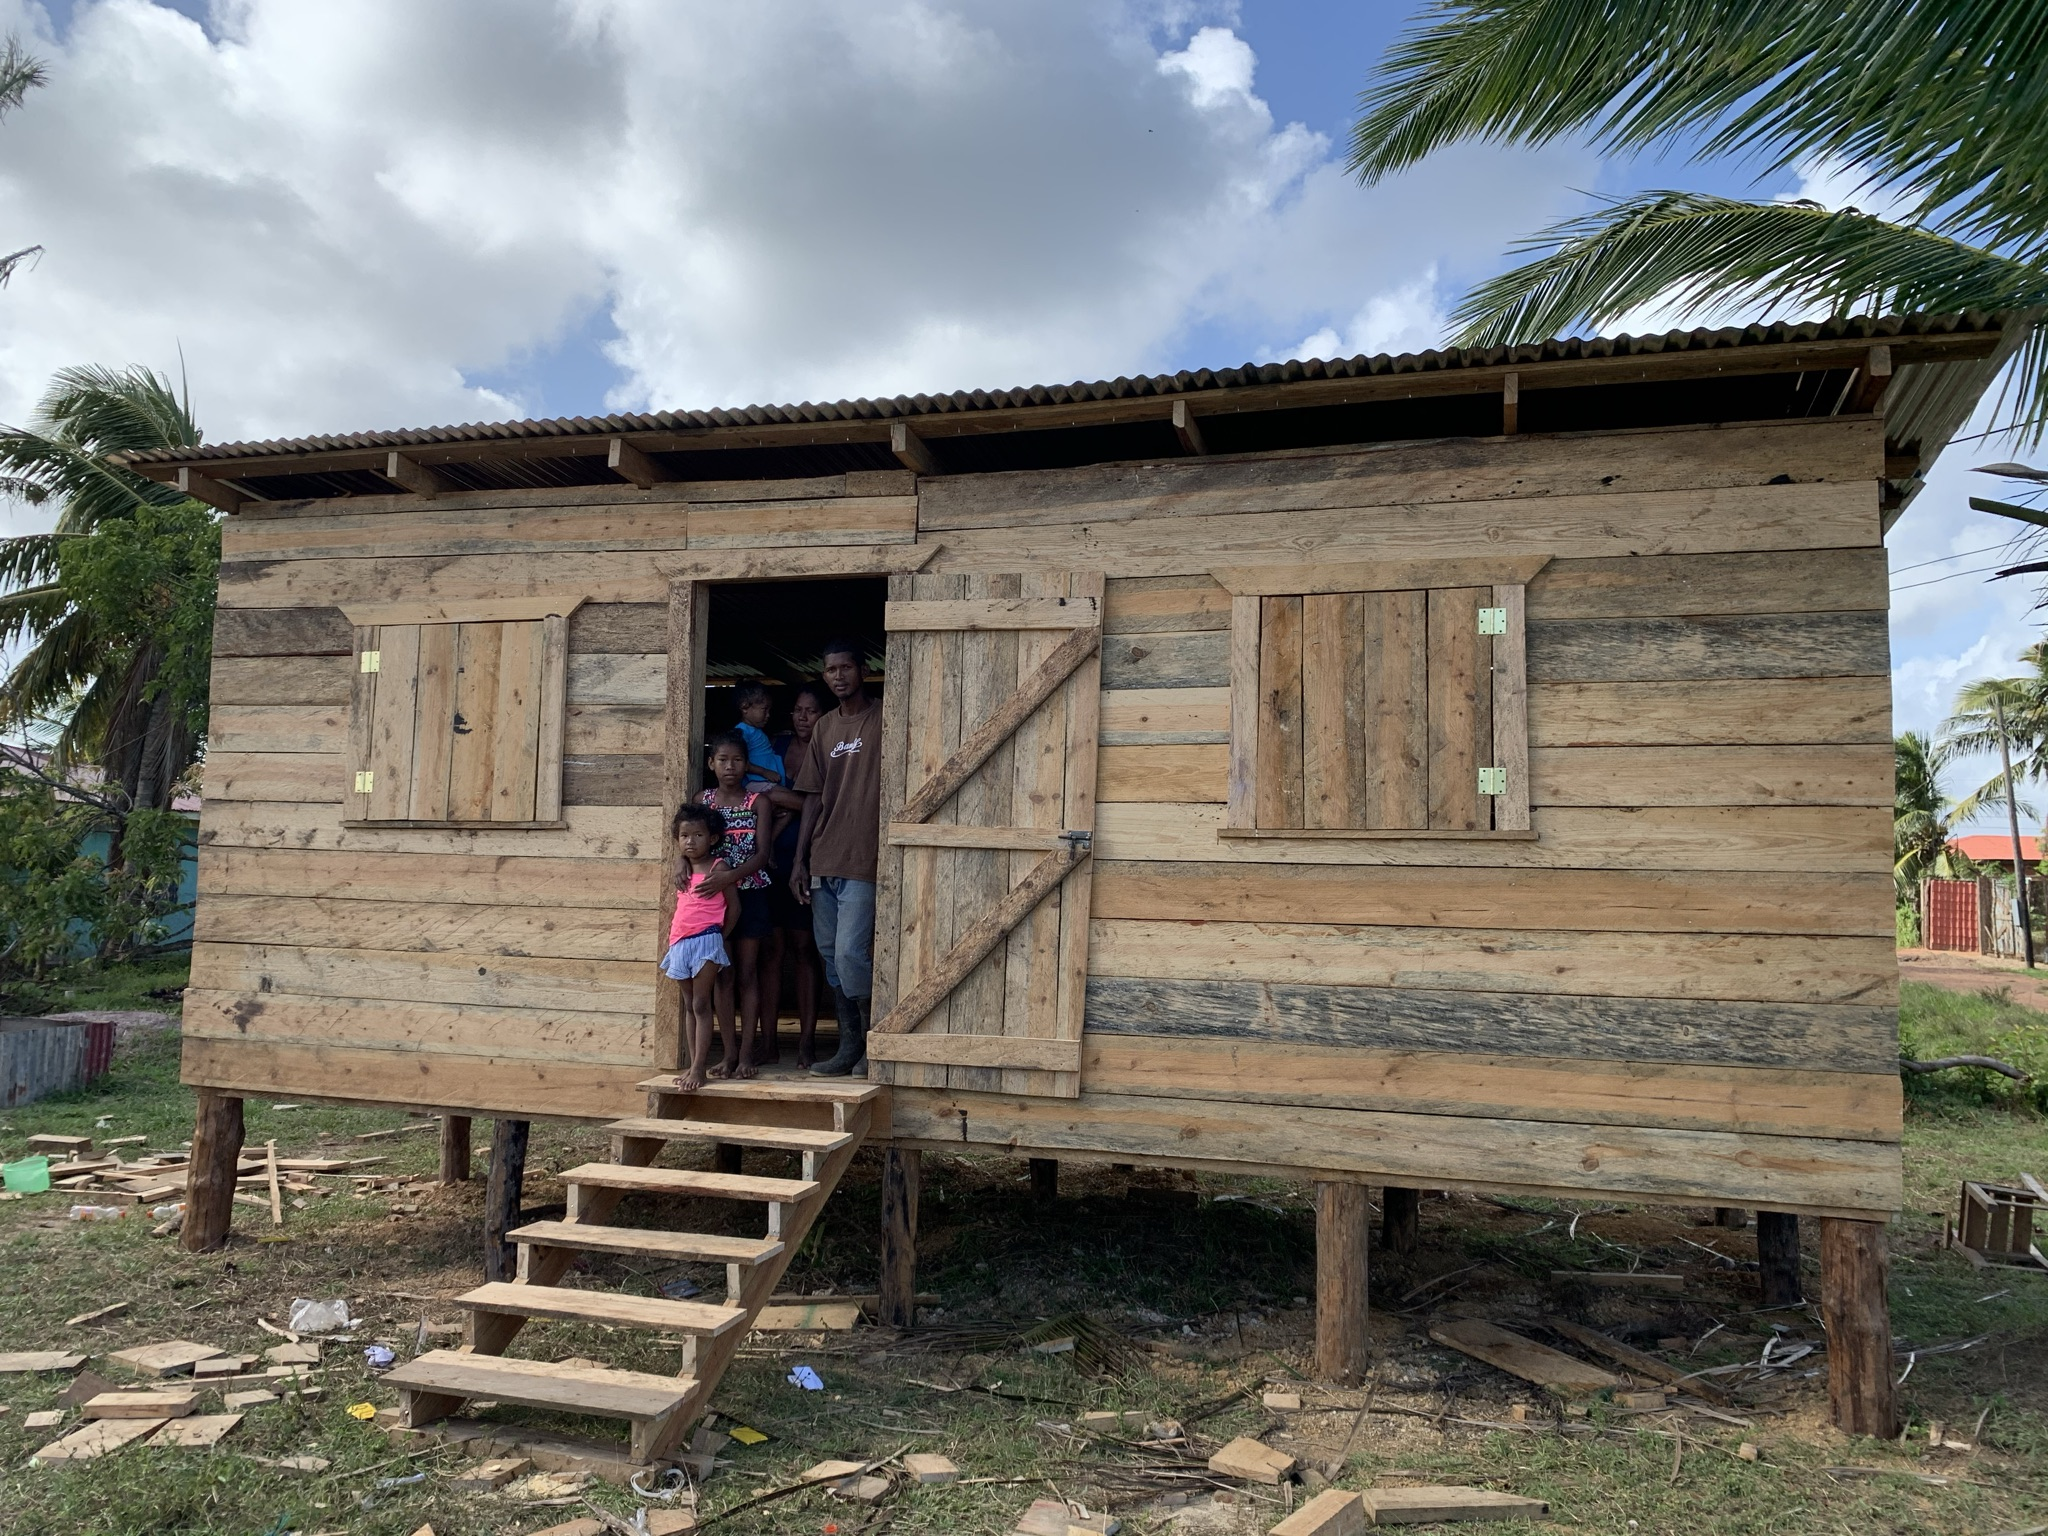 Continued needs after hurricanes in Central America